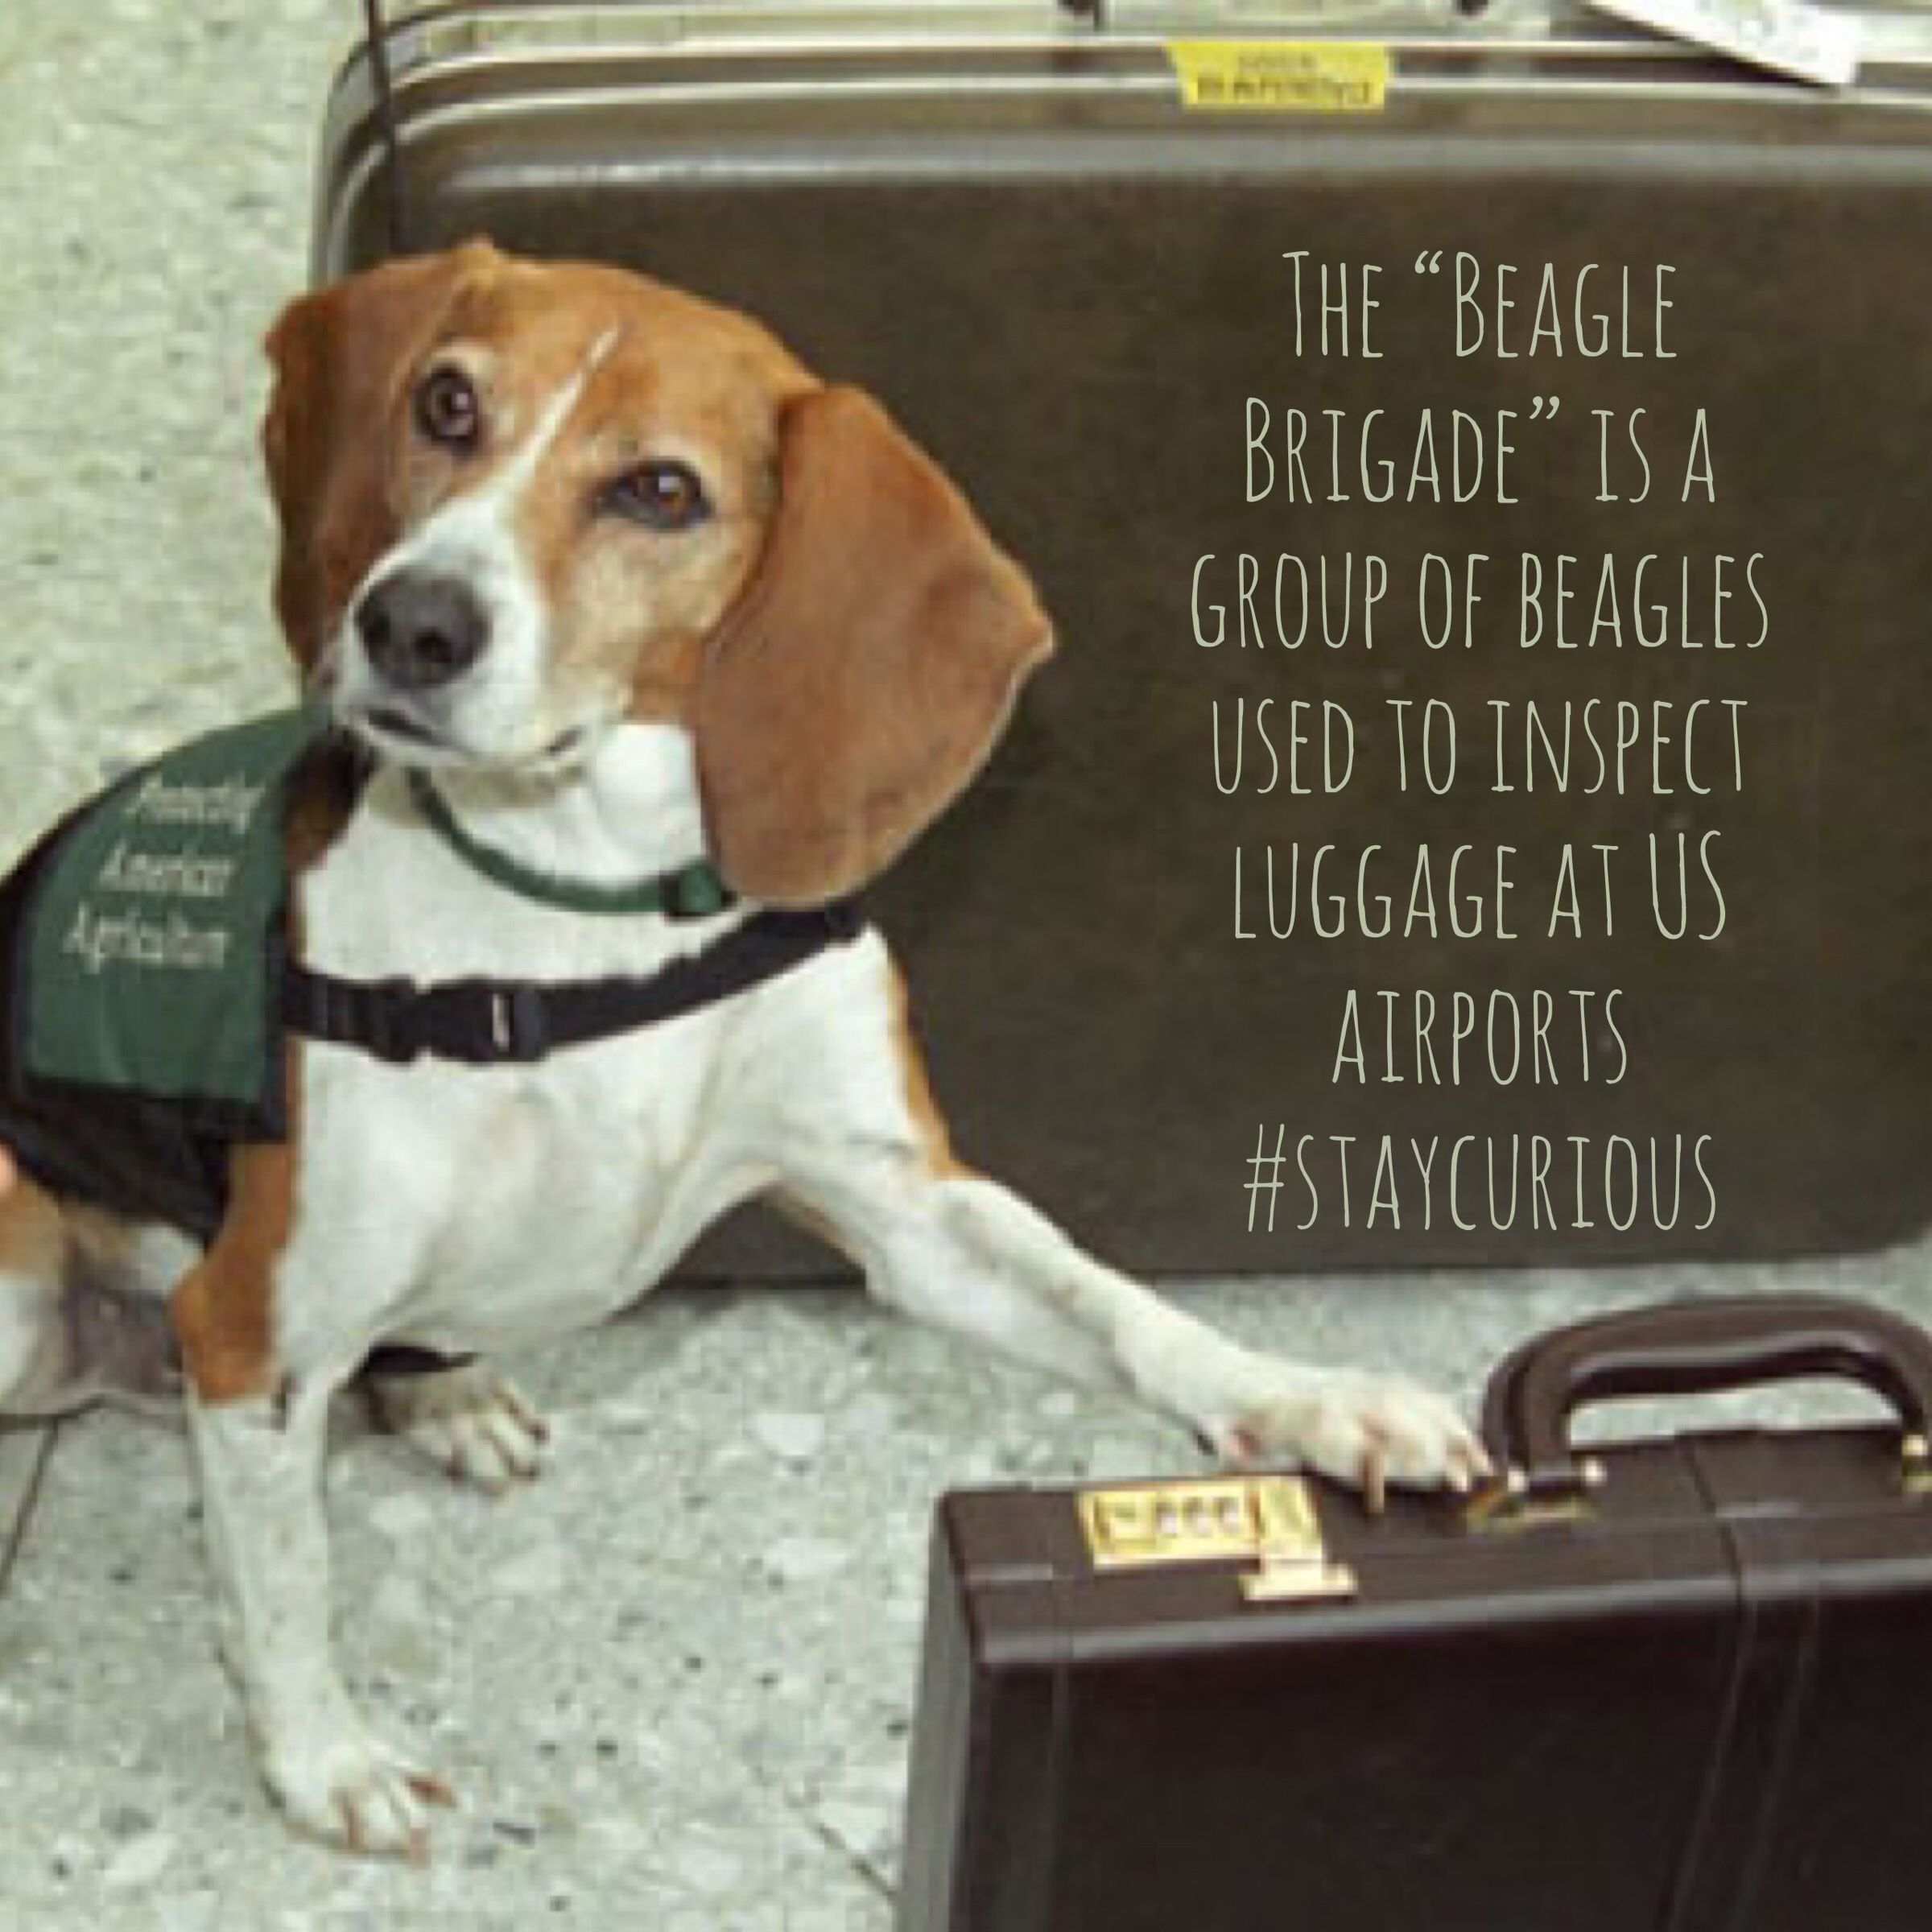 The Beagle Brigade Is A Group Of Beagles Used To Inspect Luggage